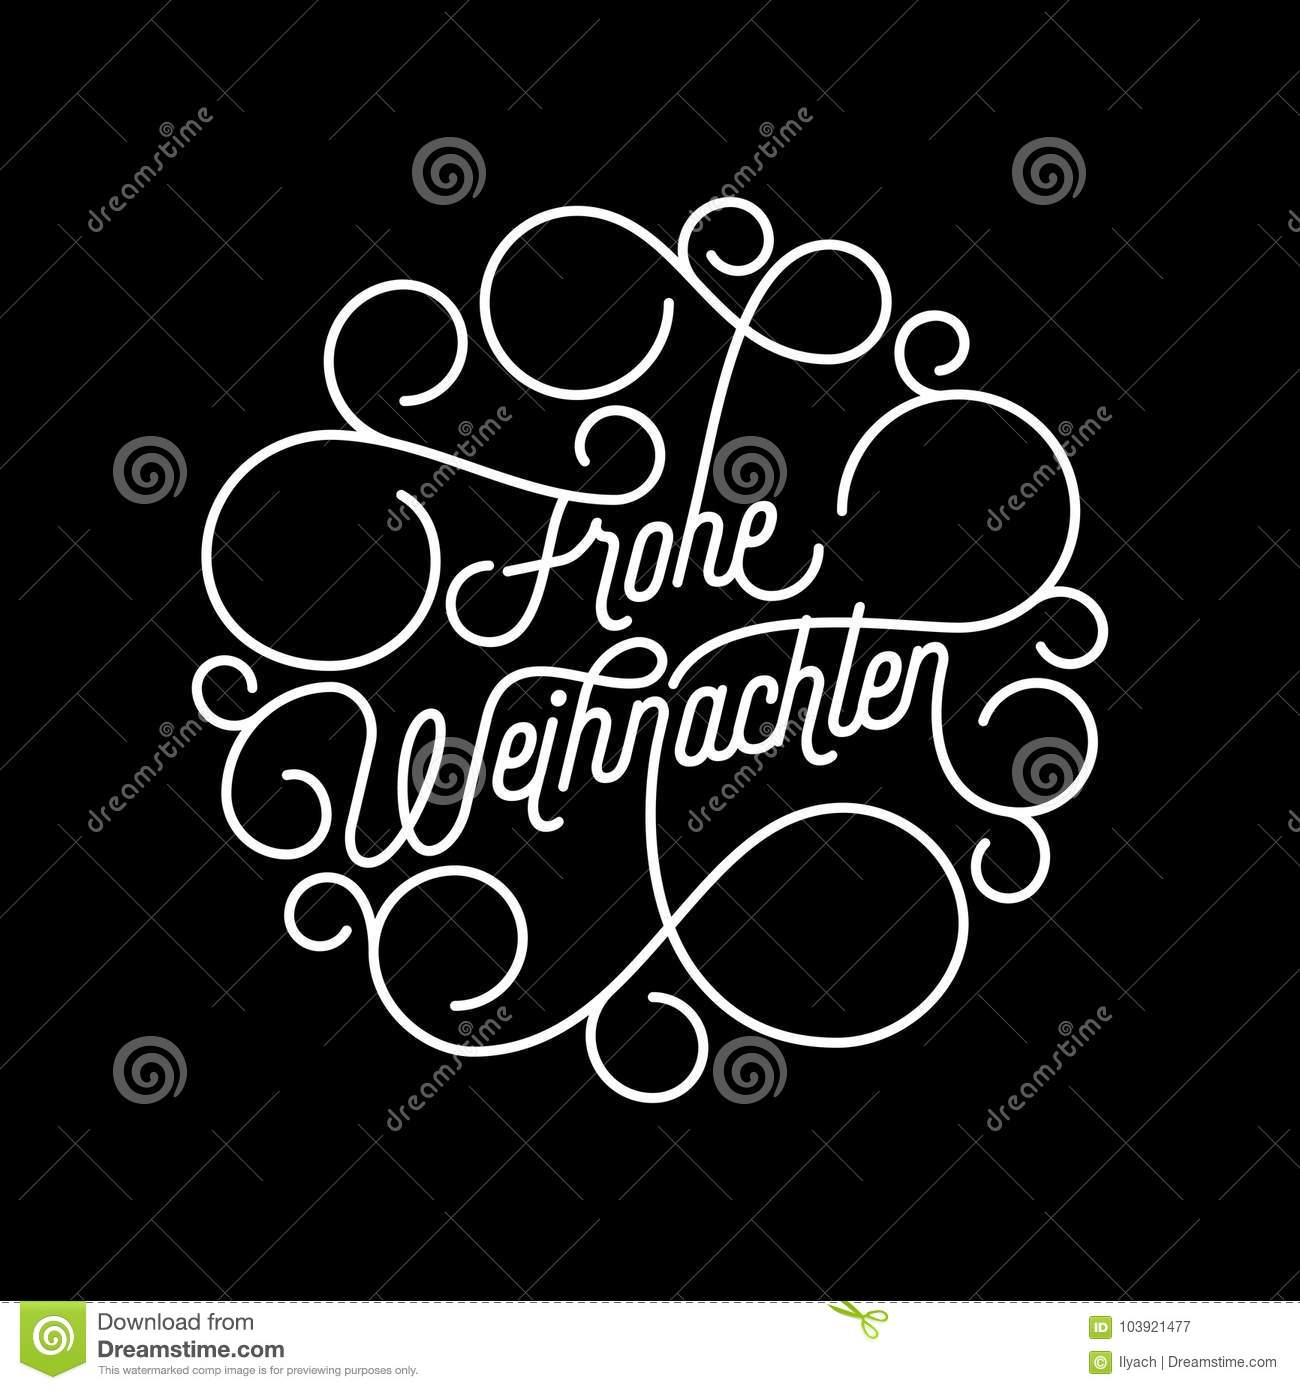 Design Weihnachten Frohe Weihnachten German Merry Christmas Flourish Calligraphy